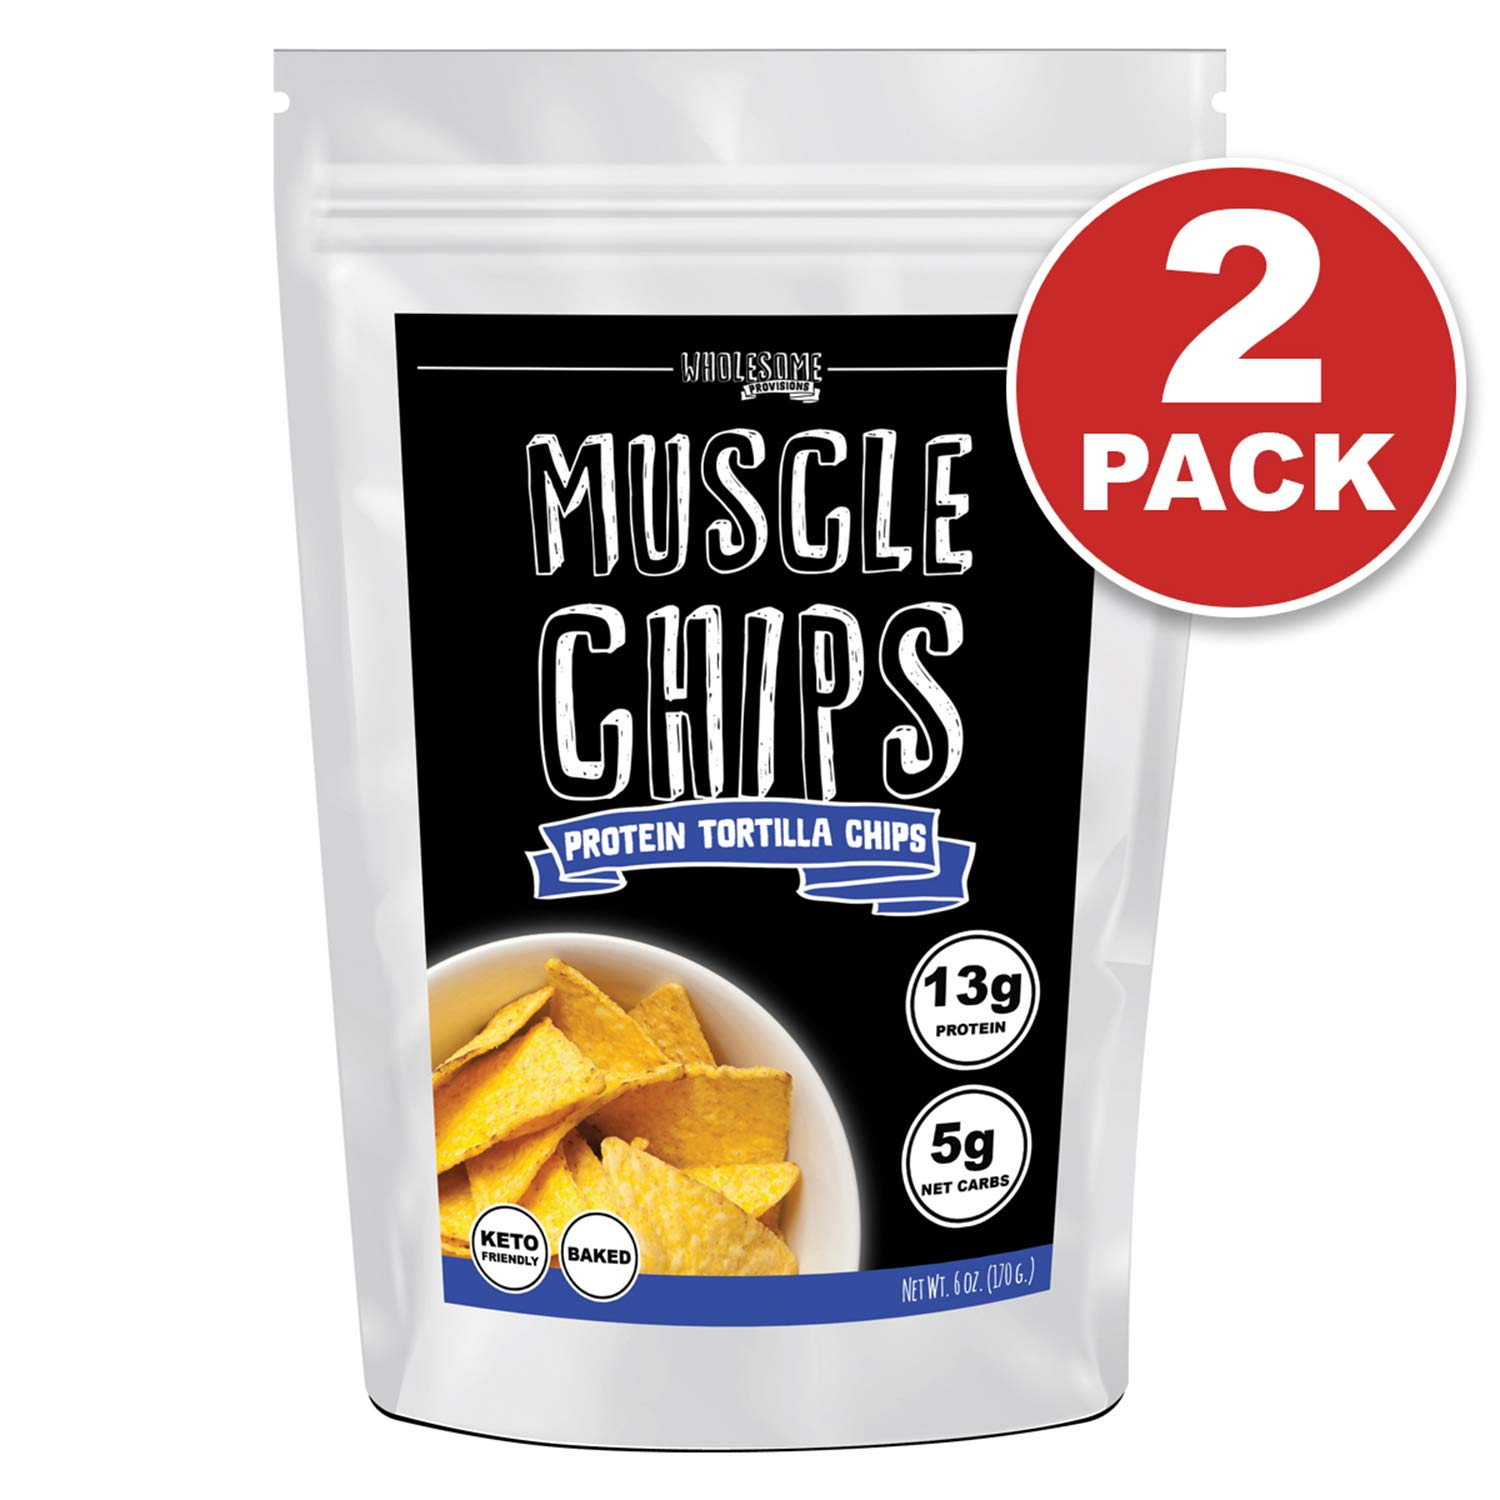 Protein Chips, 13g Protein, 5g Net Carbs, Keto Snacks, Low Carb Snacks, Protein Tortilla Chips, Muscle Chips, Baked Not Fried (2 Pack) by Wholesome Provisions